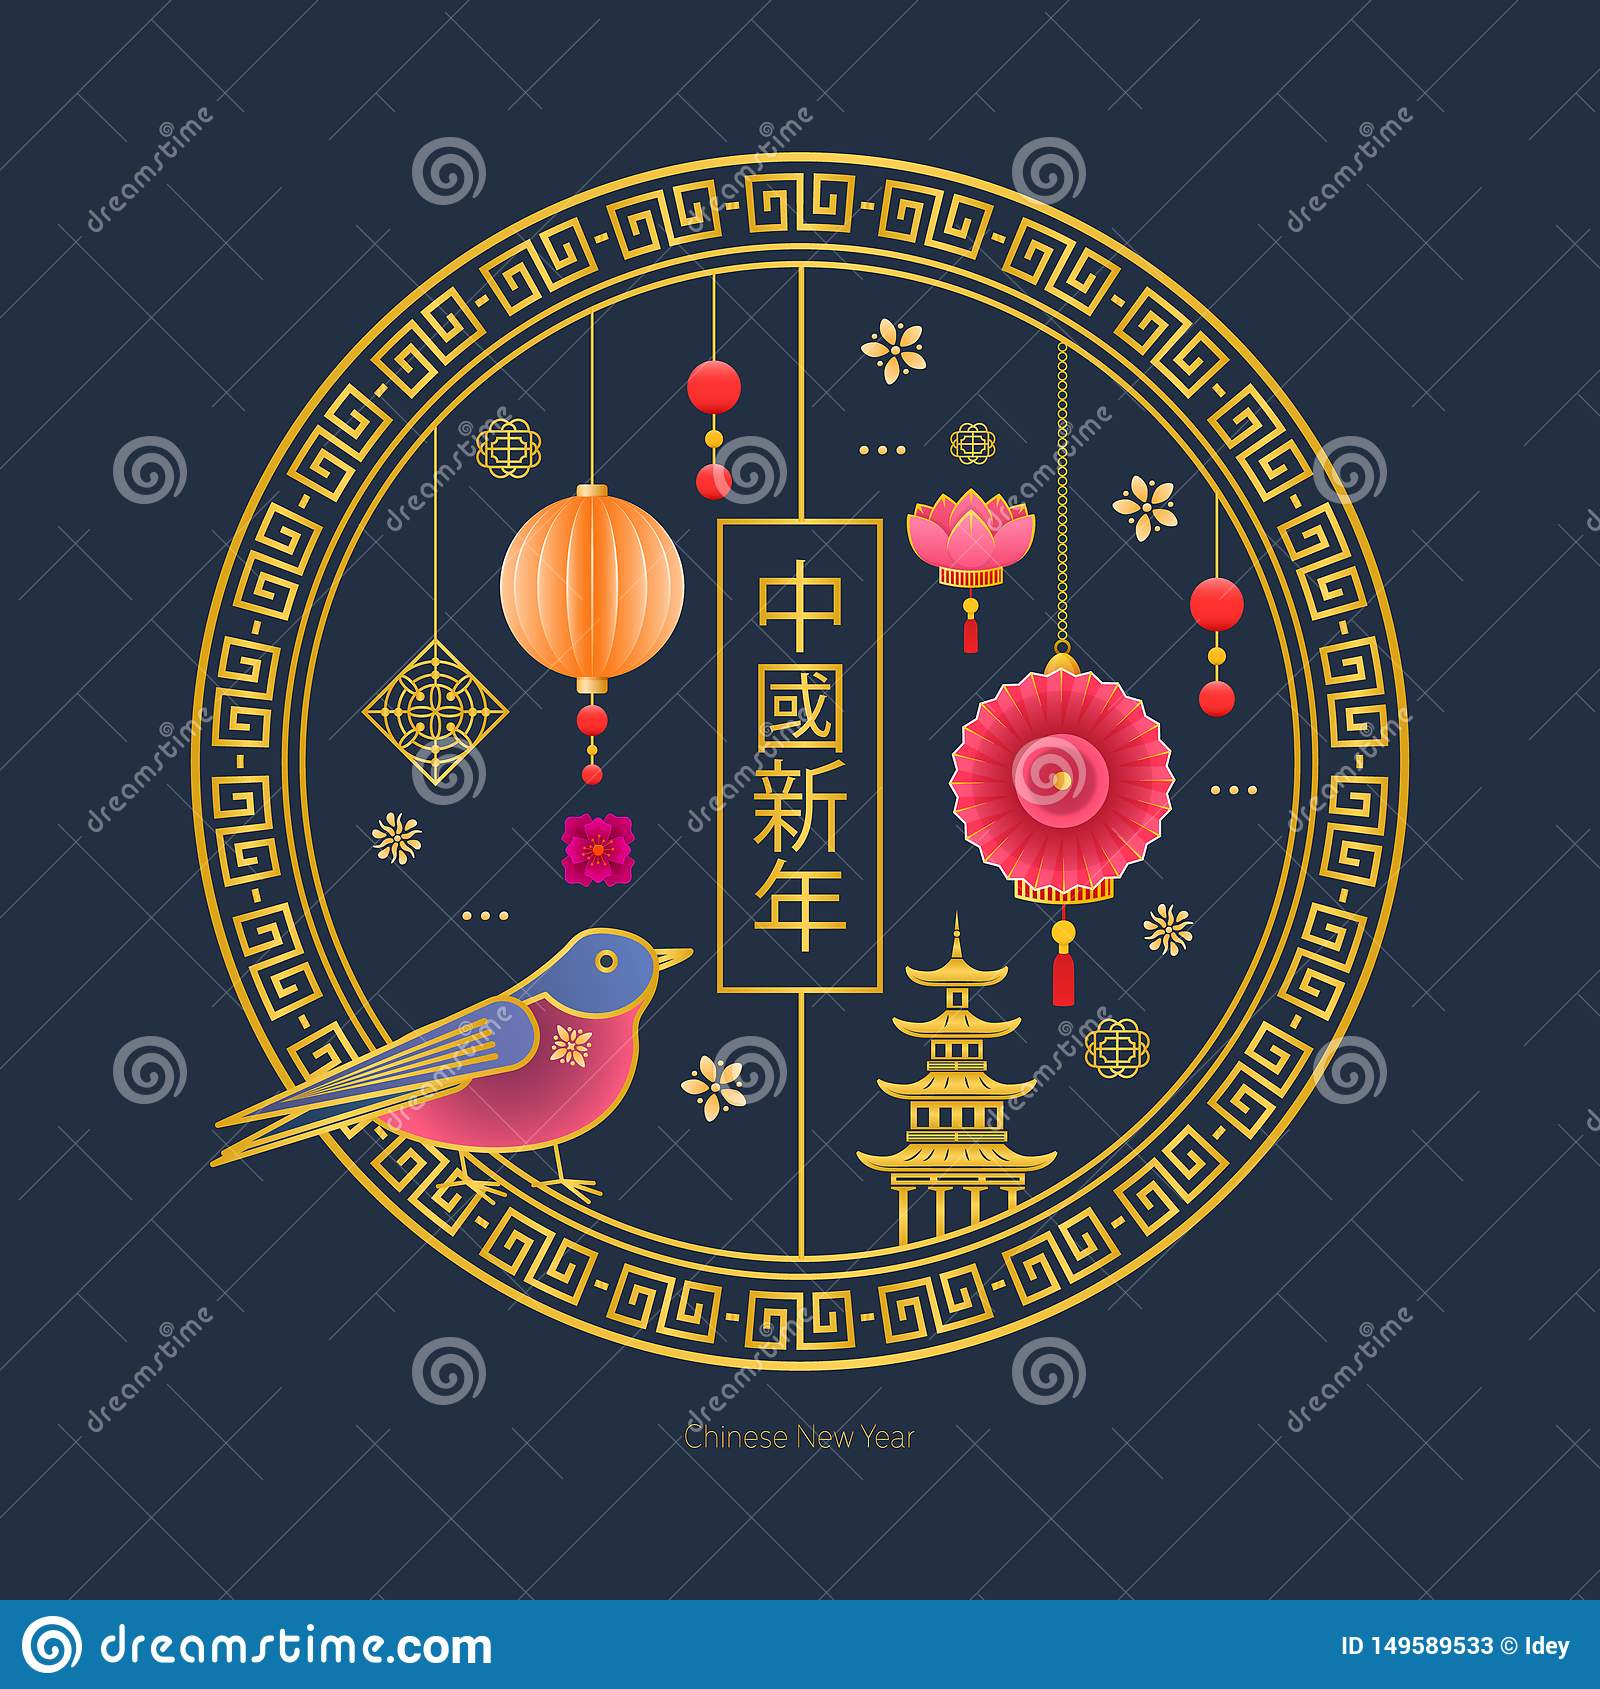 Classic Chinese new year background with lanterns, lotus, bird, flowers